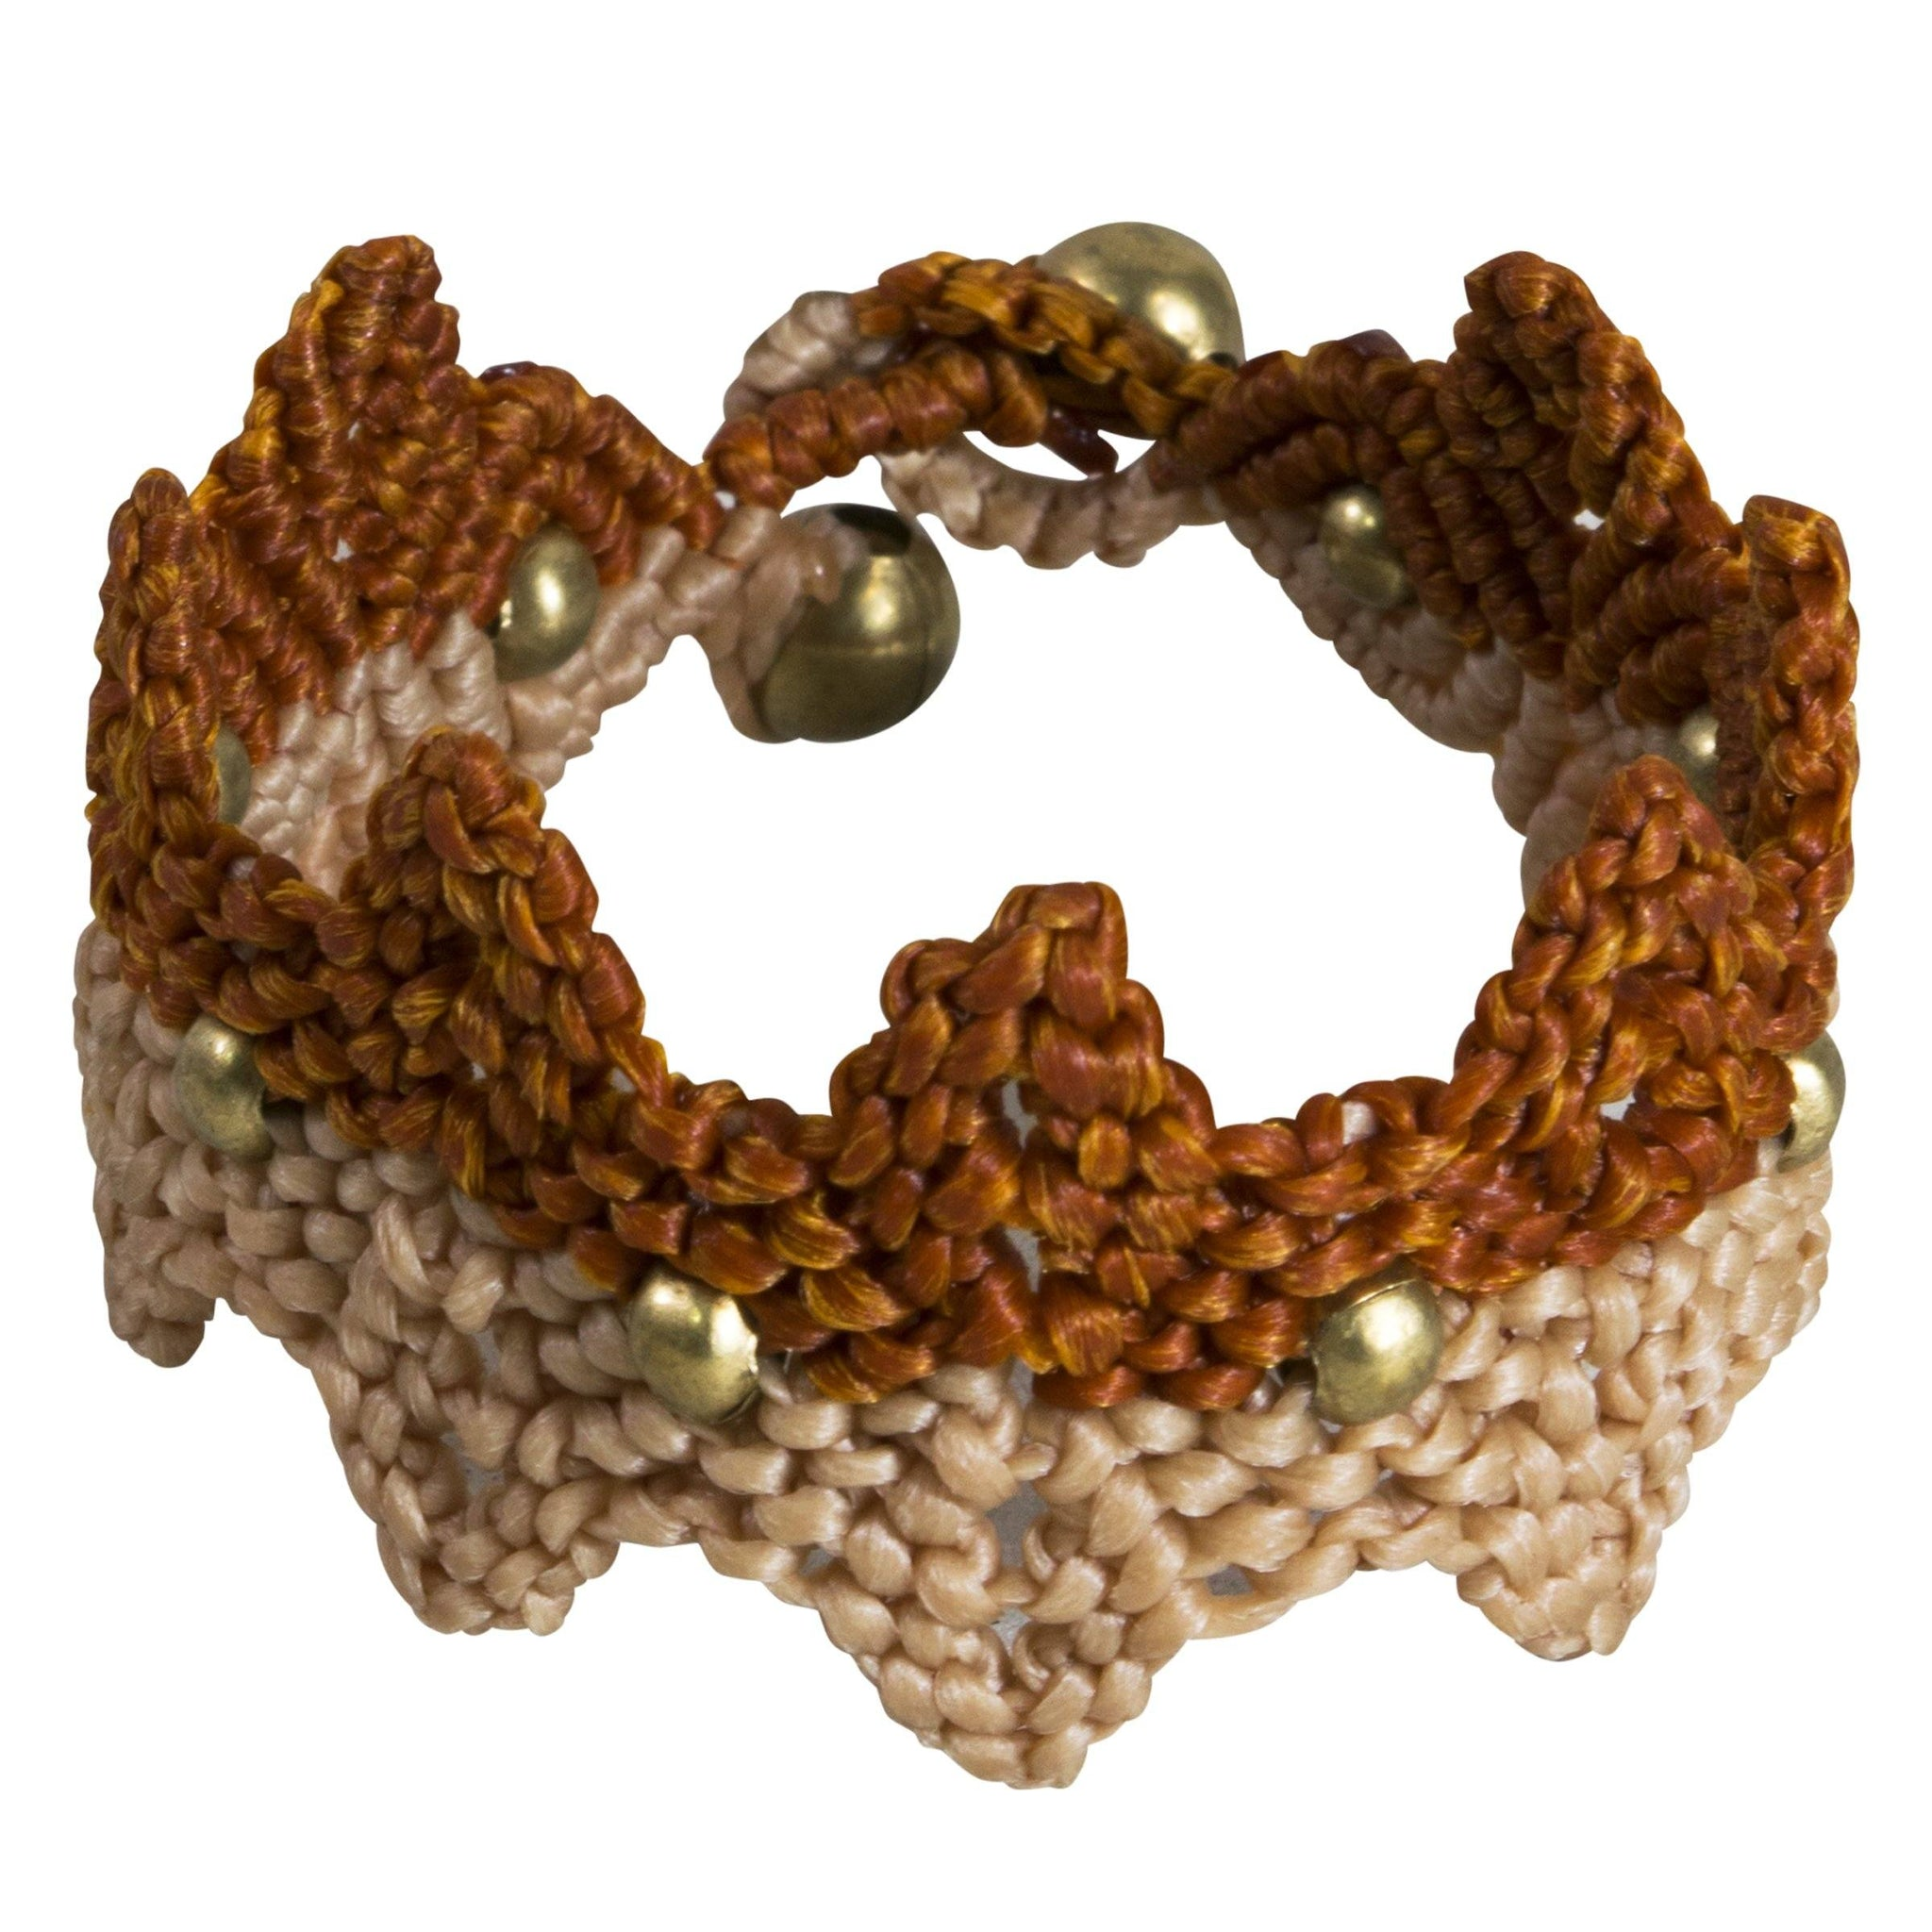 Bracelet Macrame Cuff Stylish Tribal Bohemian Jewellery Unique Accessories - CCCollections